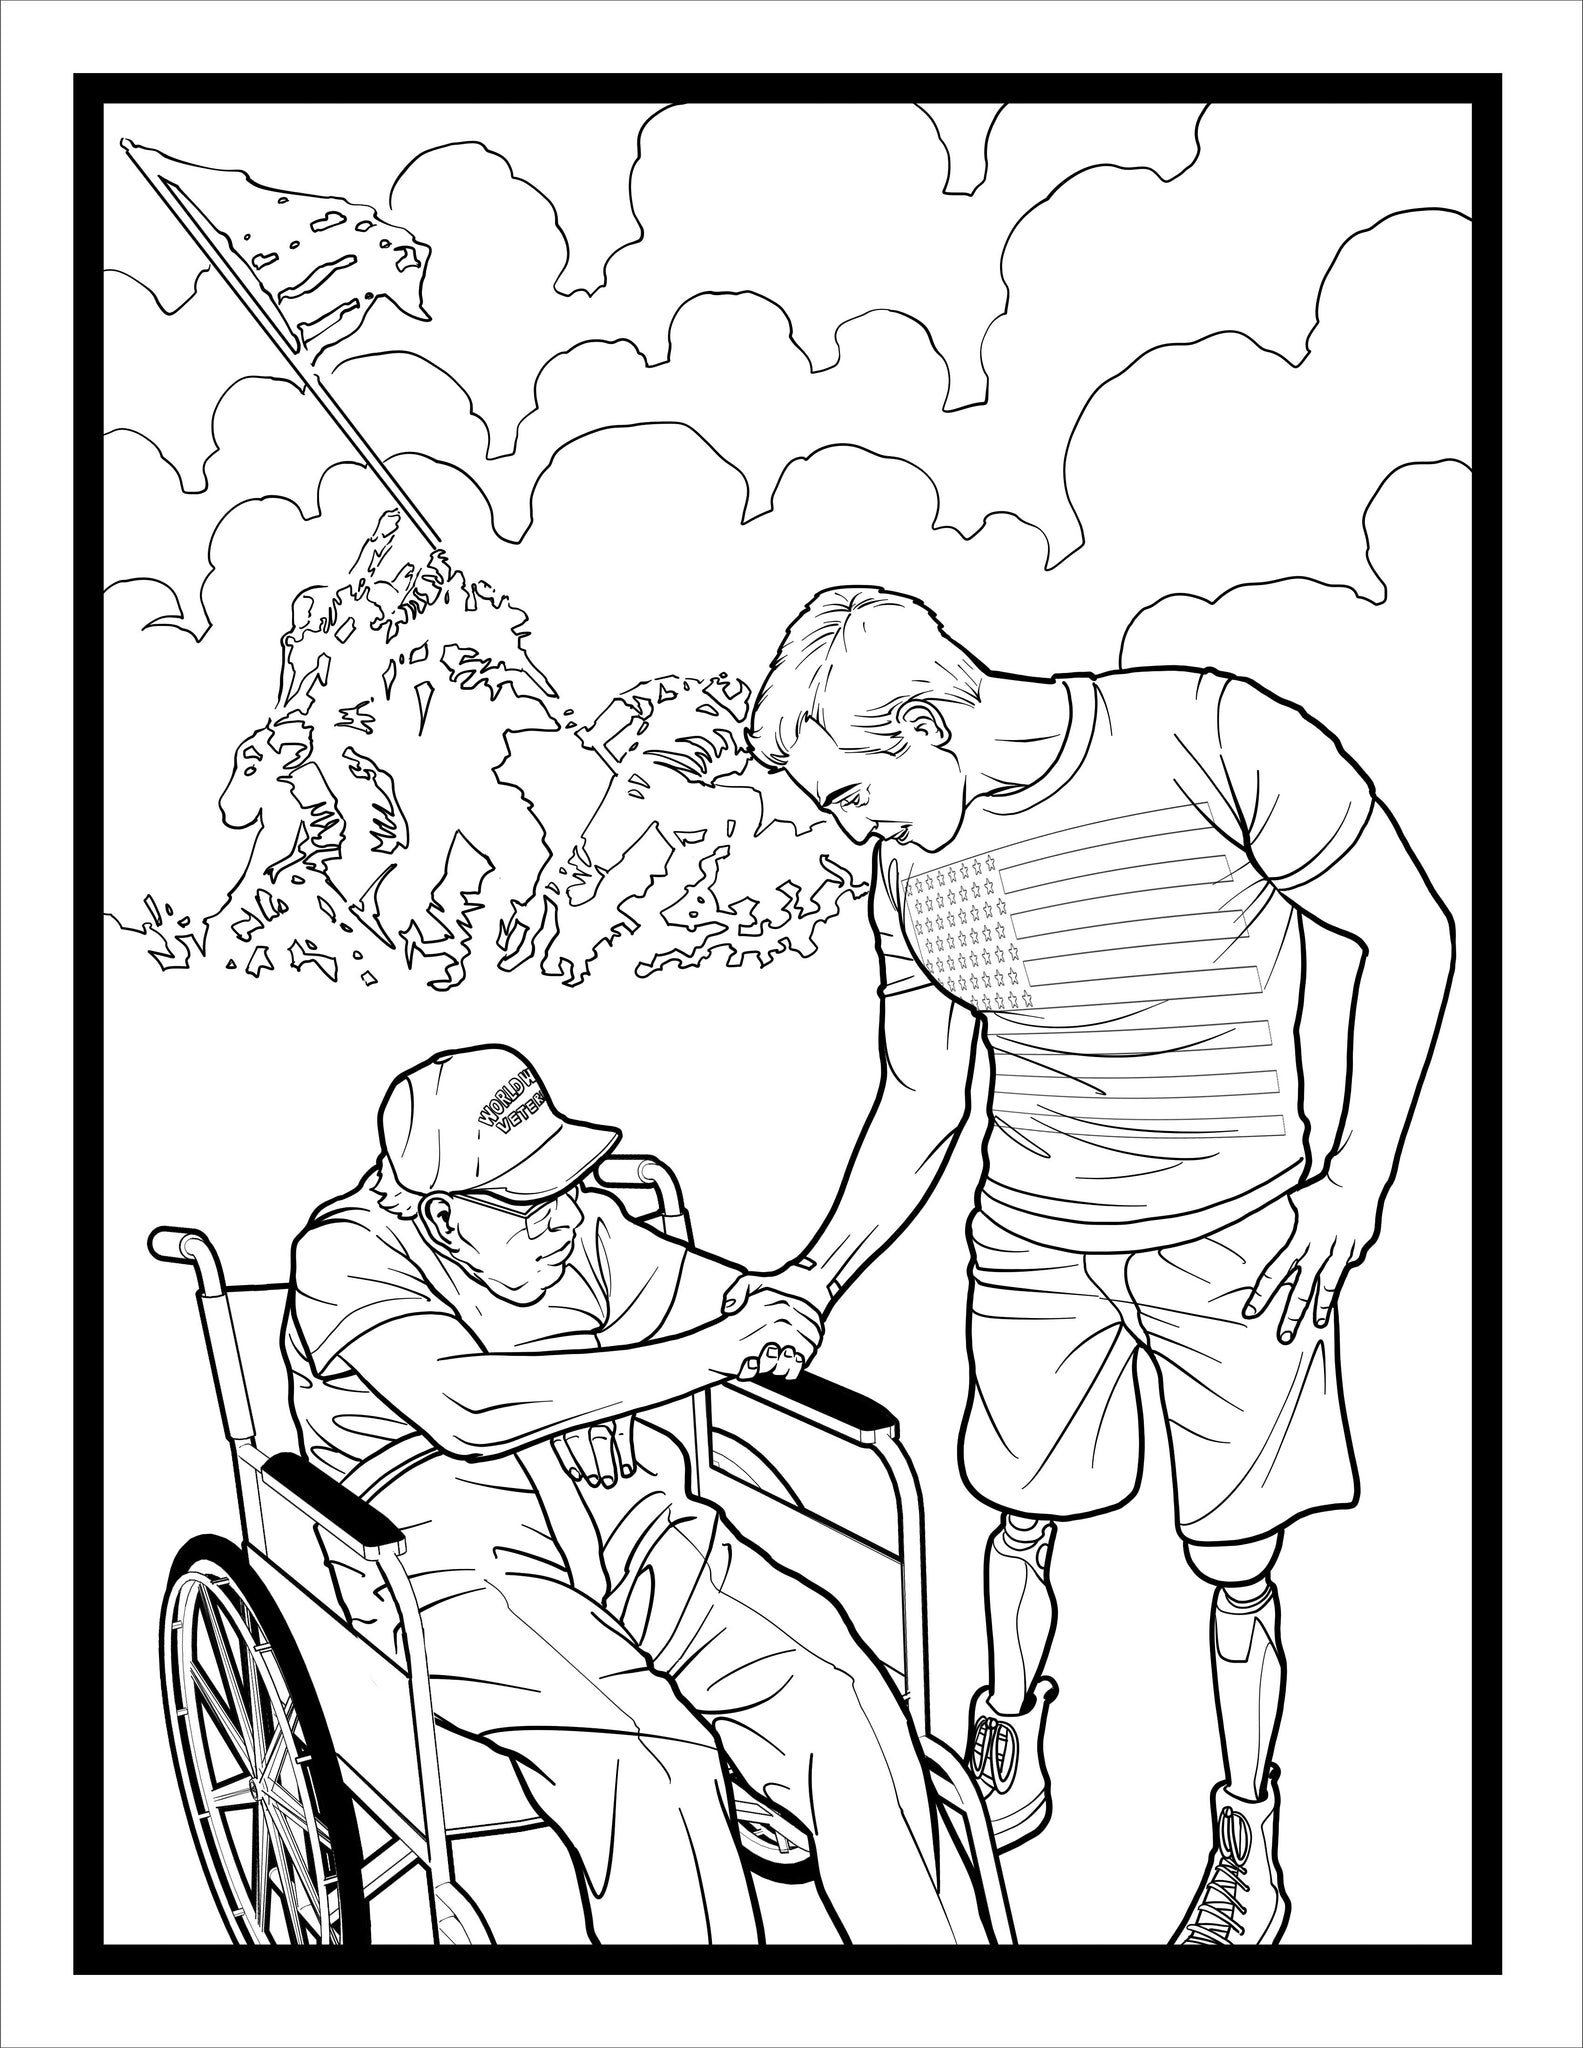 Book coloring -  Blown Away The Story Of Ssgt Johnny Joey Jones Coloring Book